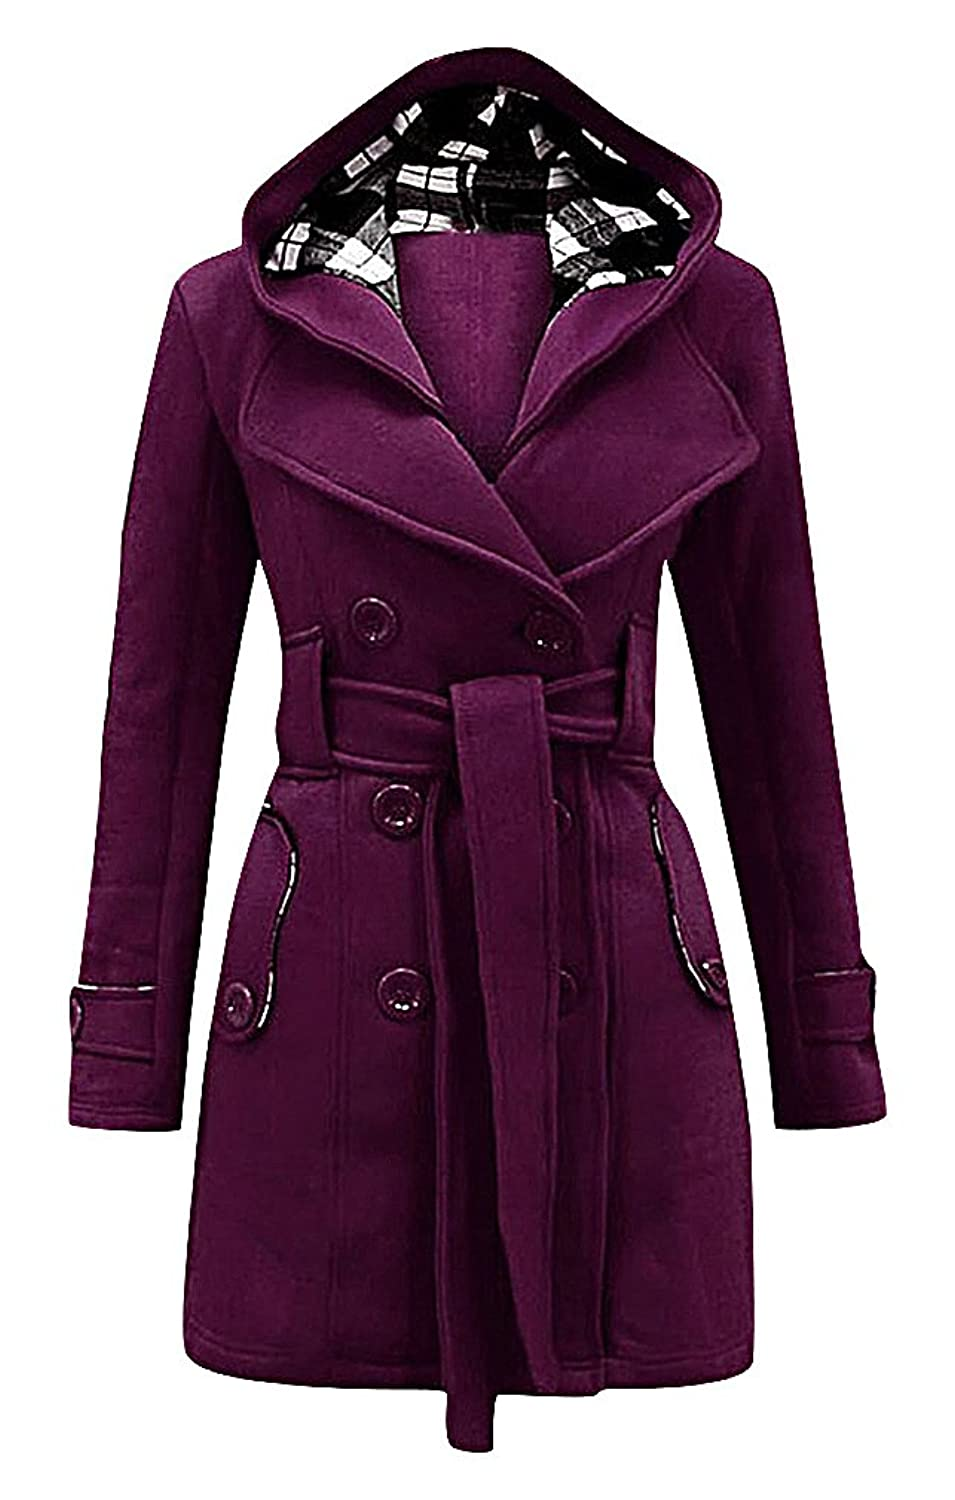 Maze, Women's Double Breasted Notch Collar Warm Belted Plaid Hood Trench Coat